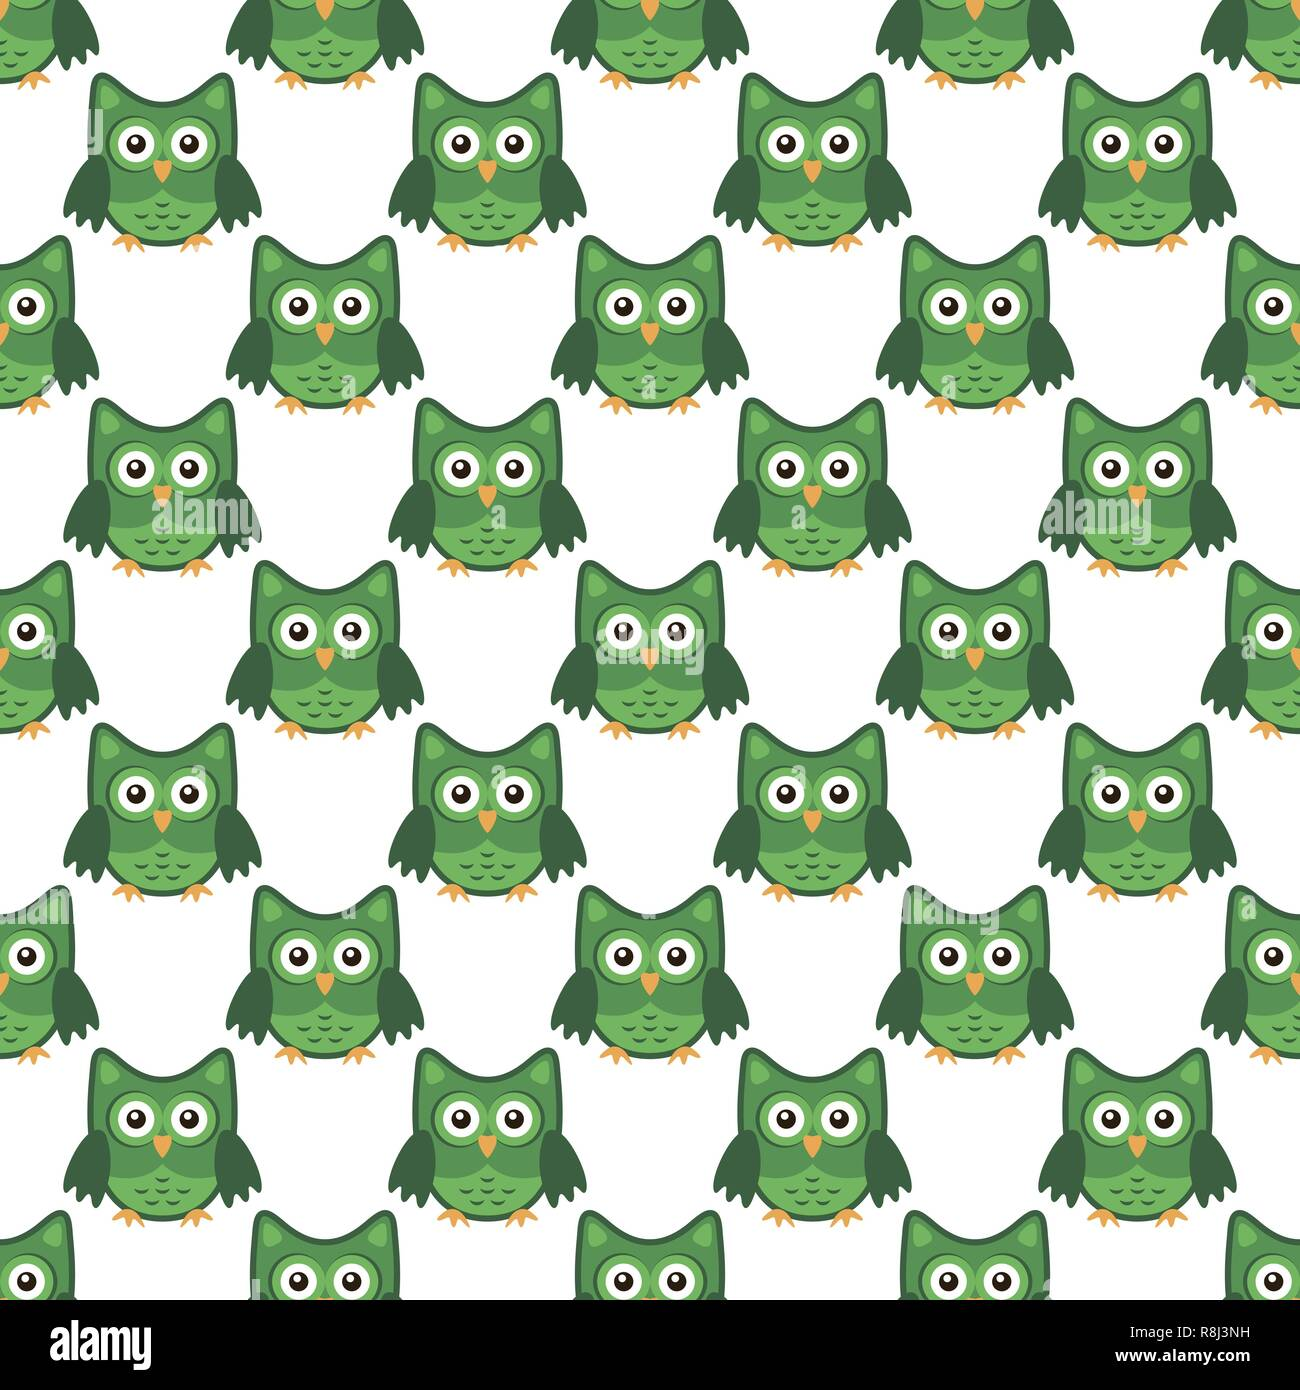 Owl stylized art seemless pattern green white colors - Stock Vector